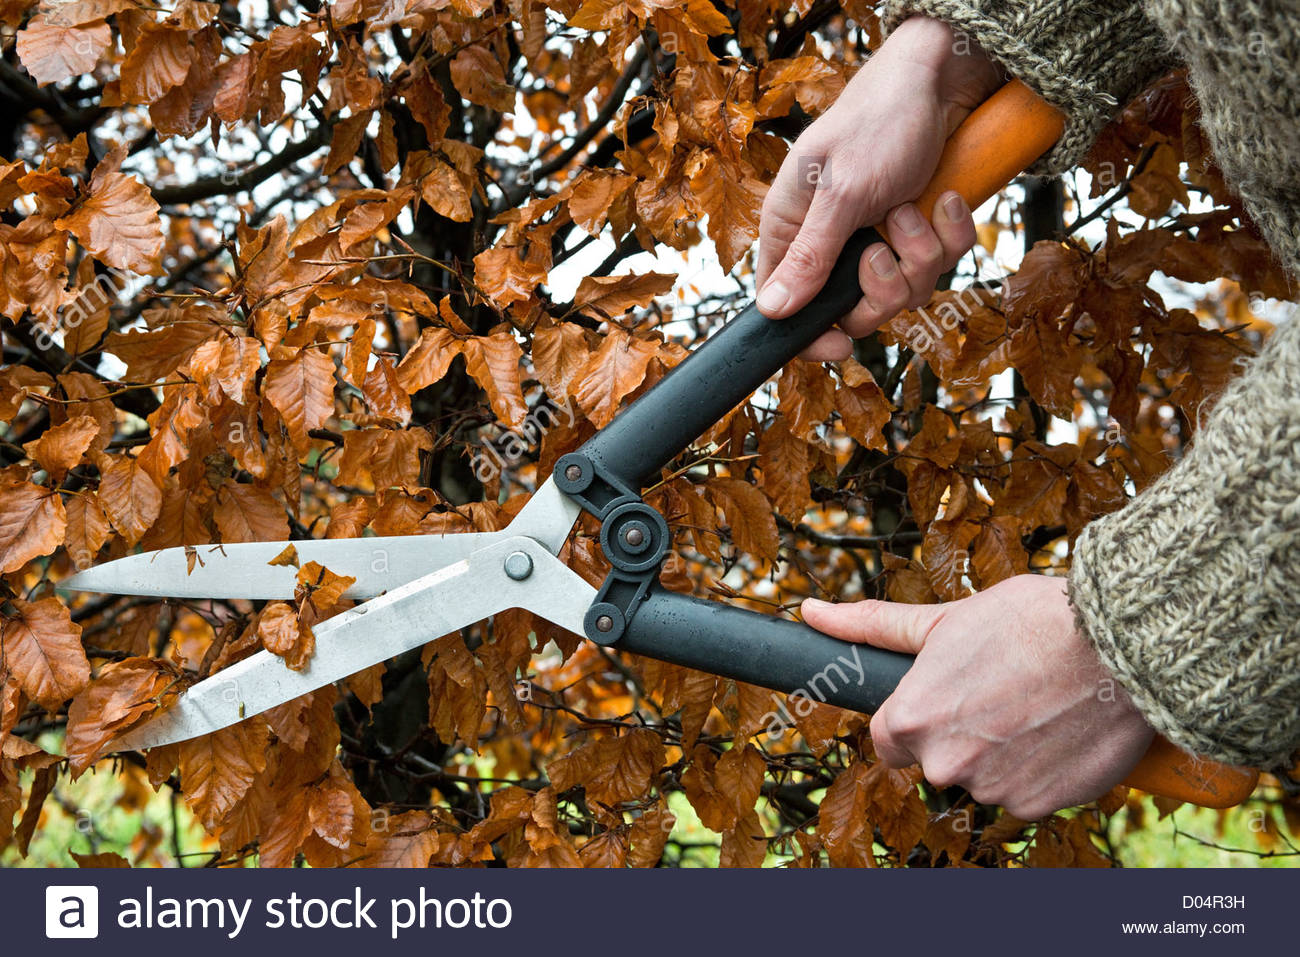 Clipping a beech (Fagus sylvatica) hedge with shears in autumn - Stock Image